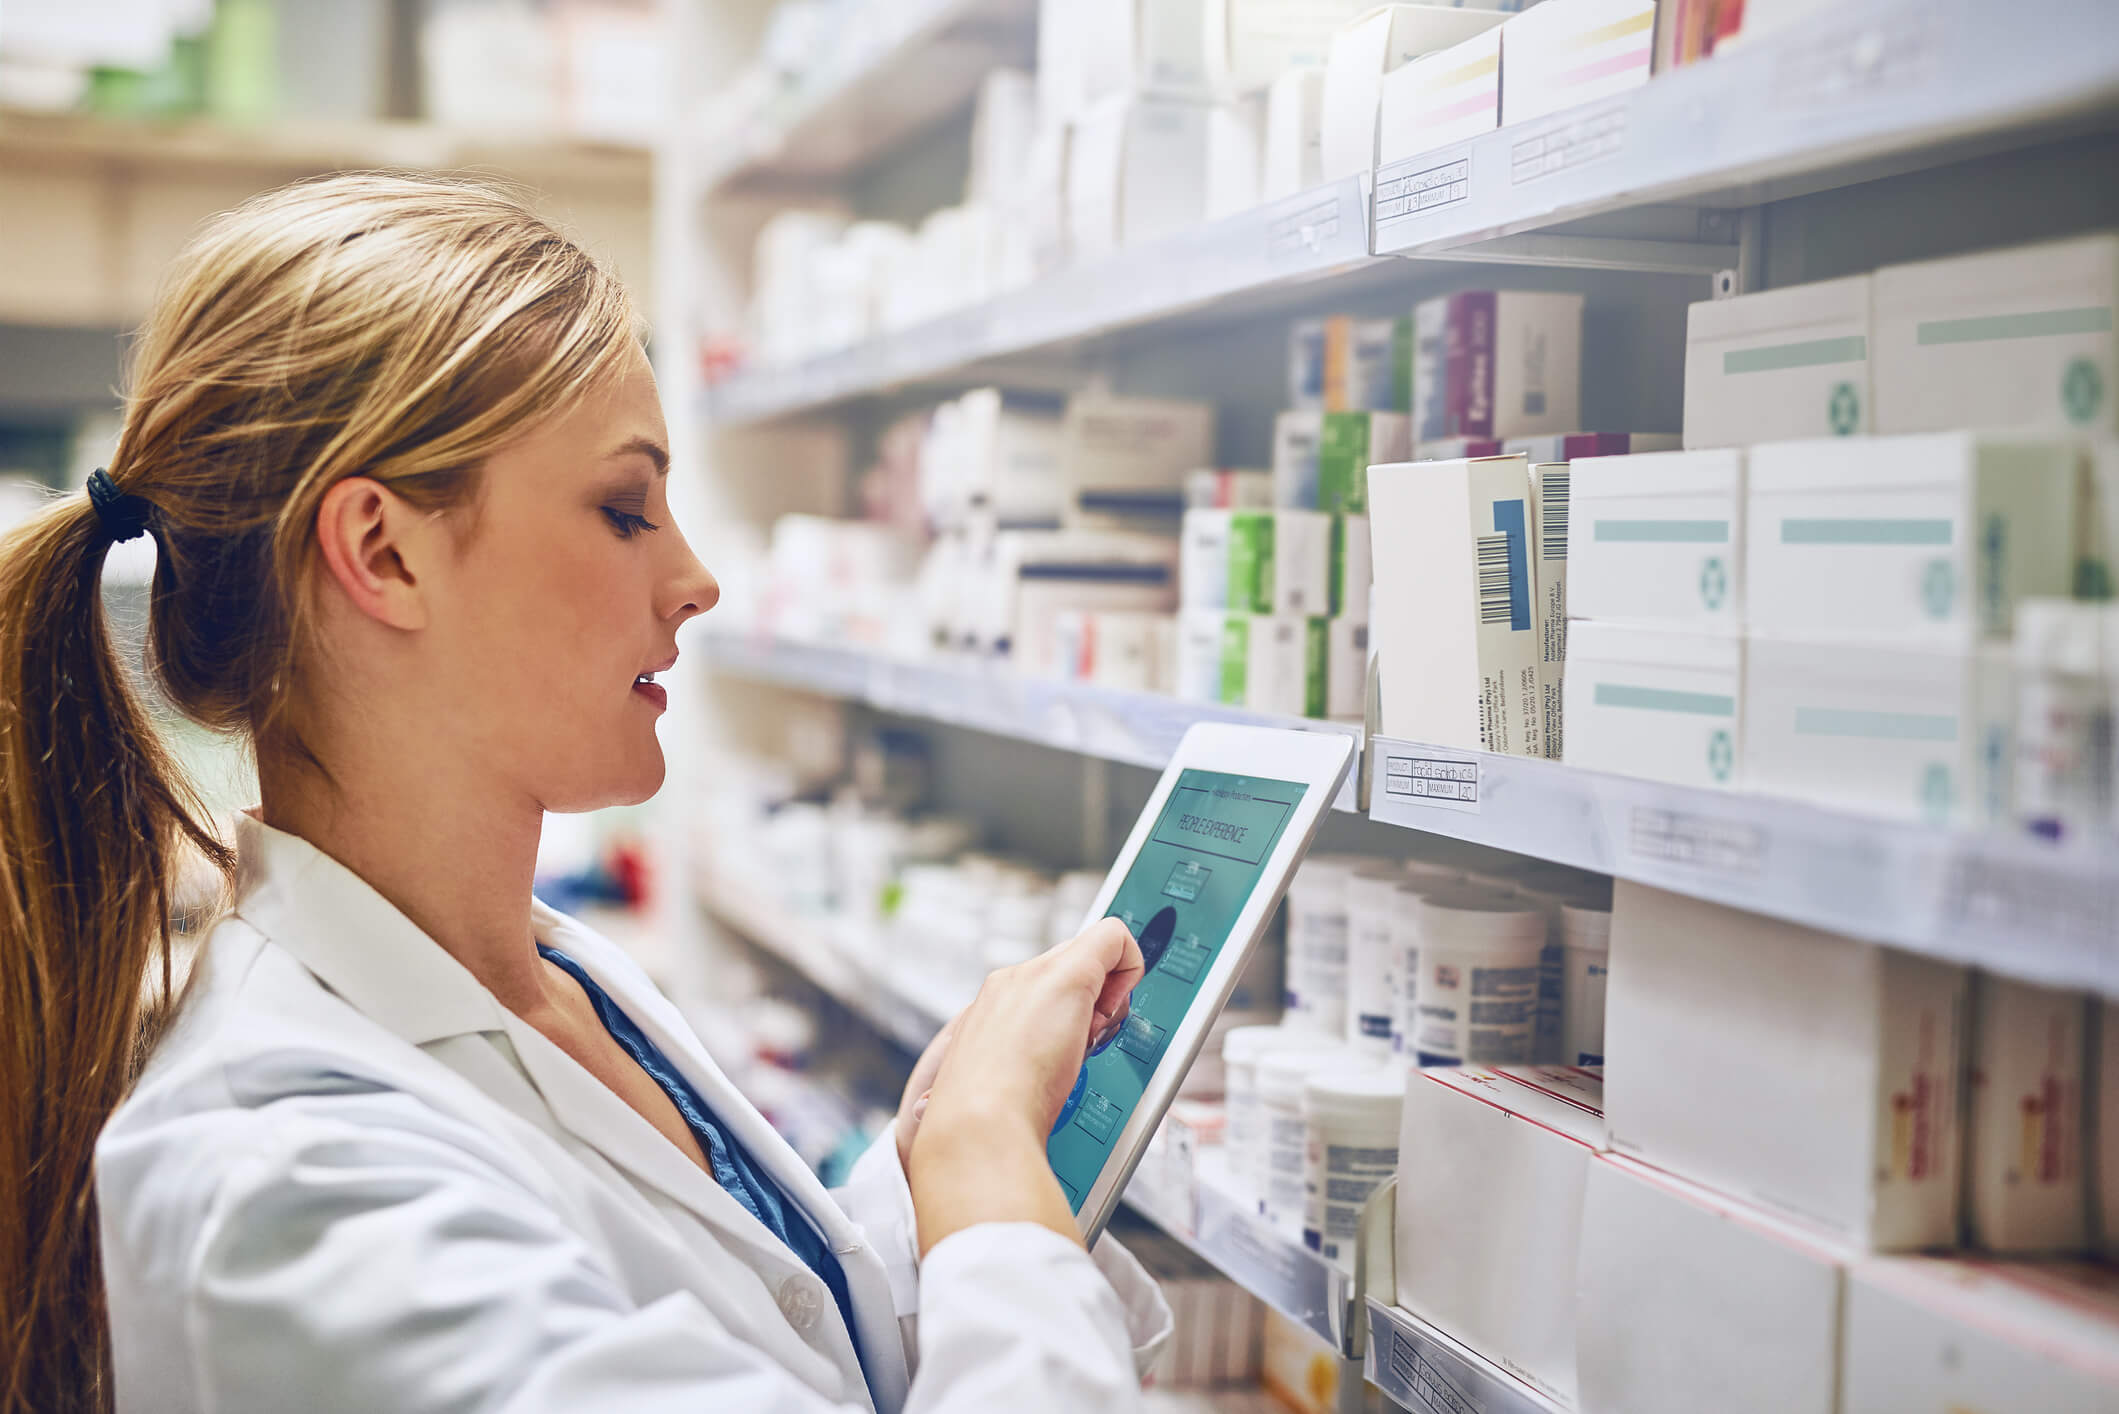 Pharmacy worker checking drug inventory on ipad